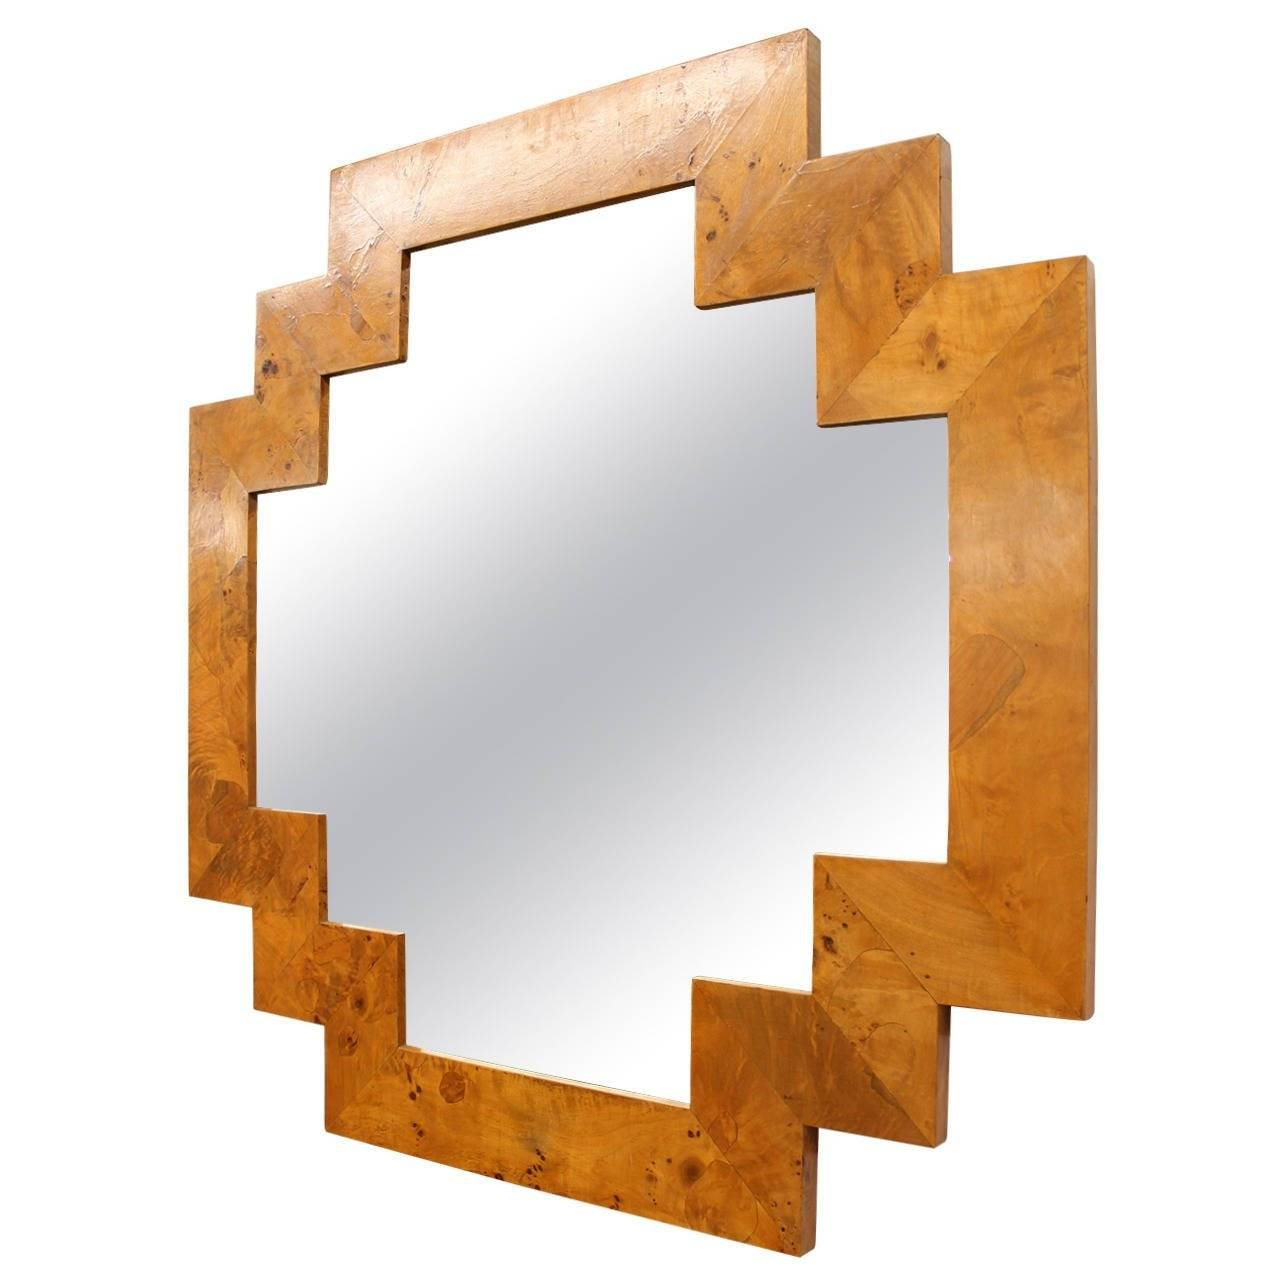 Art Deco Style Geometric Italian Burl Wood Wall Mirror At 1Stdibs regarding Art Nouveau Wall Mirrors (Image 8 of 25)